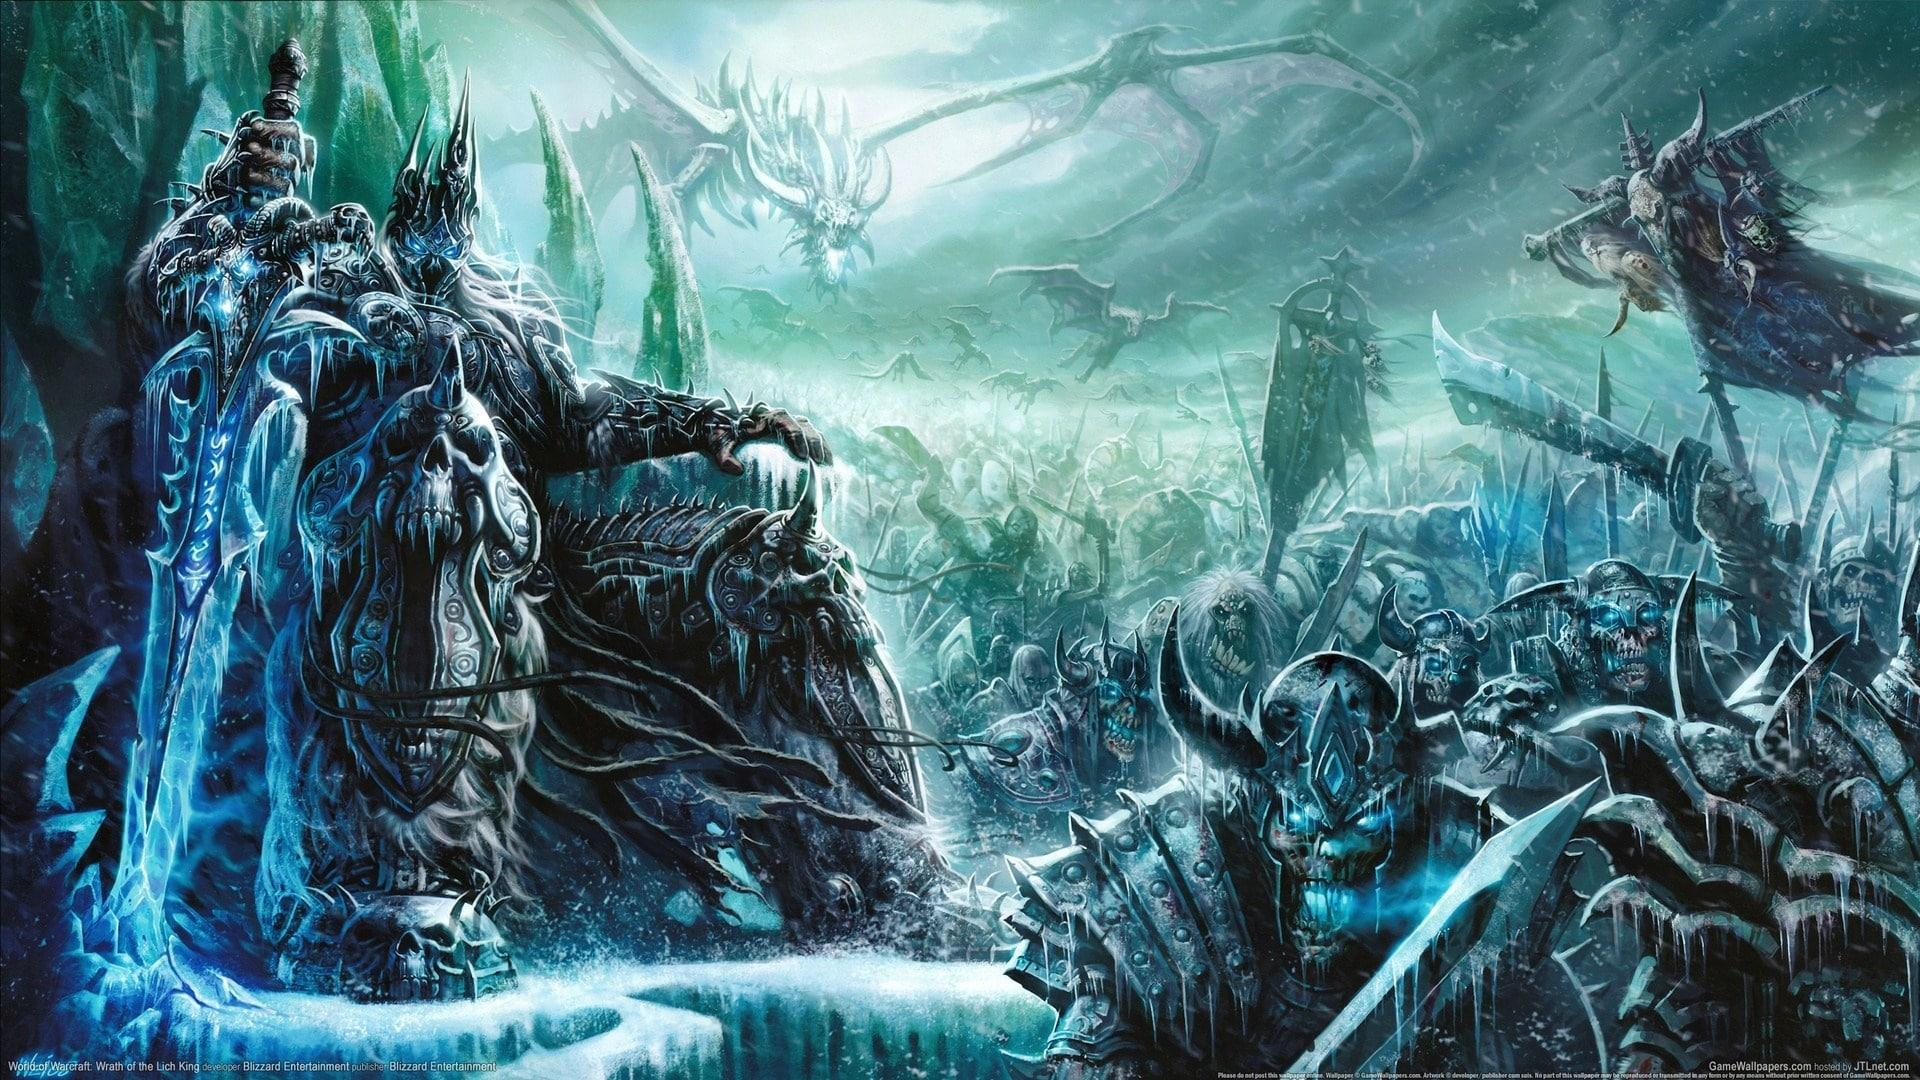 Download Lich King Wallpaper Hd Hd Backgrounds Download